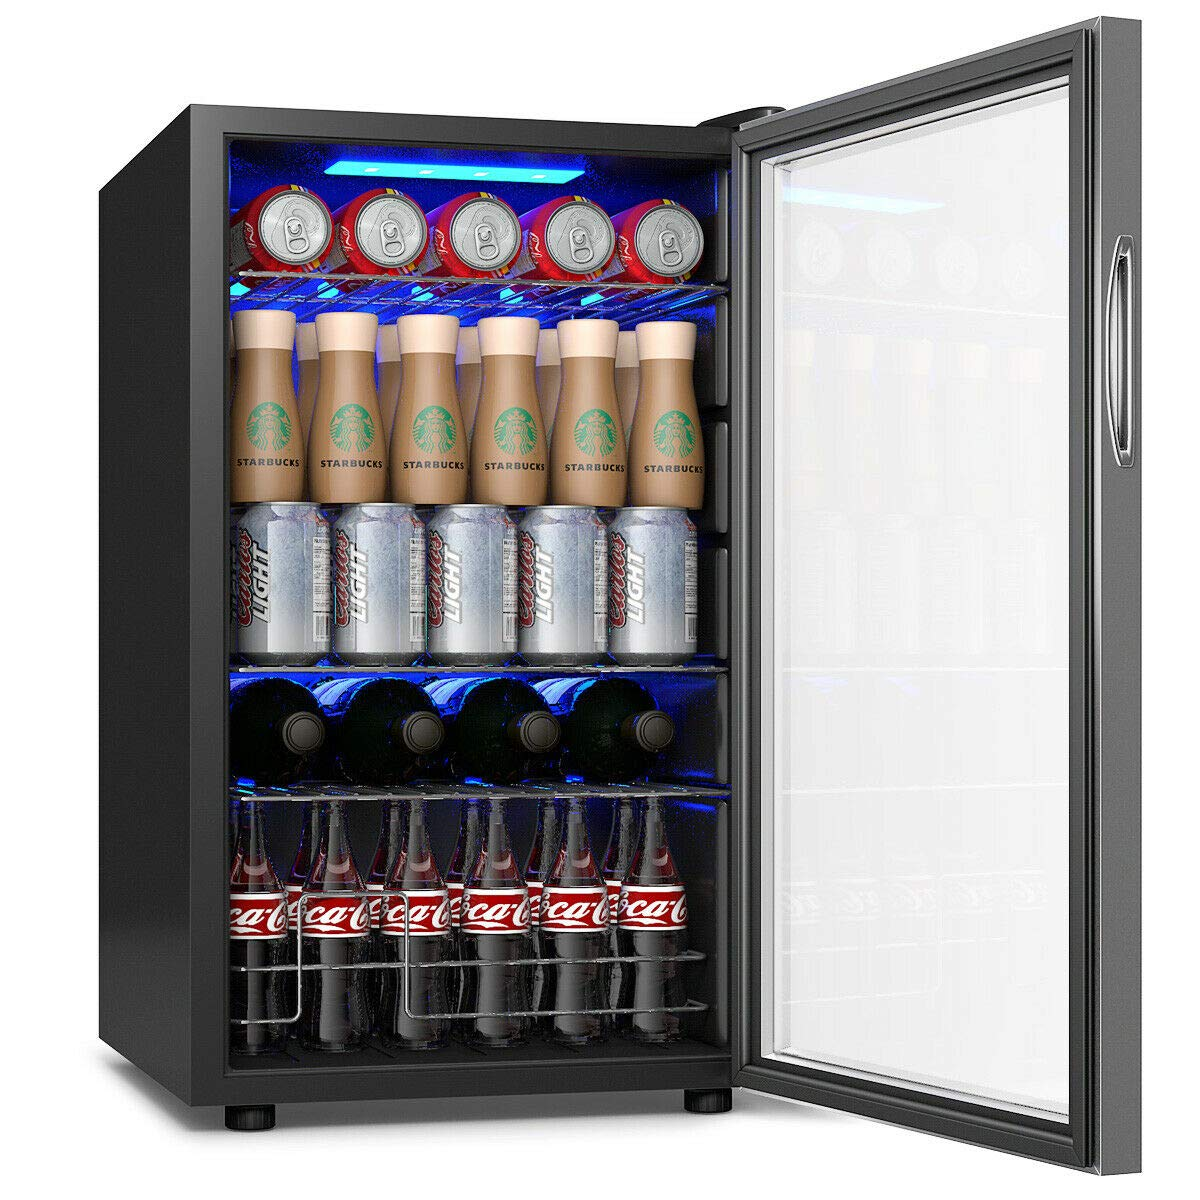 COSTWAY Beverage Refrigerator and Cooler, 76 Can Mini Fridge with Glass Door for Soda Beer or Wine Small Drink Dispenser Machine for Office or Bar (17''x 17.5''x29'') by COSTWAY